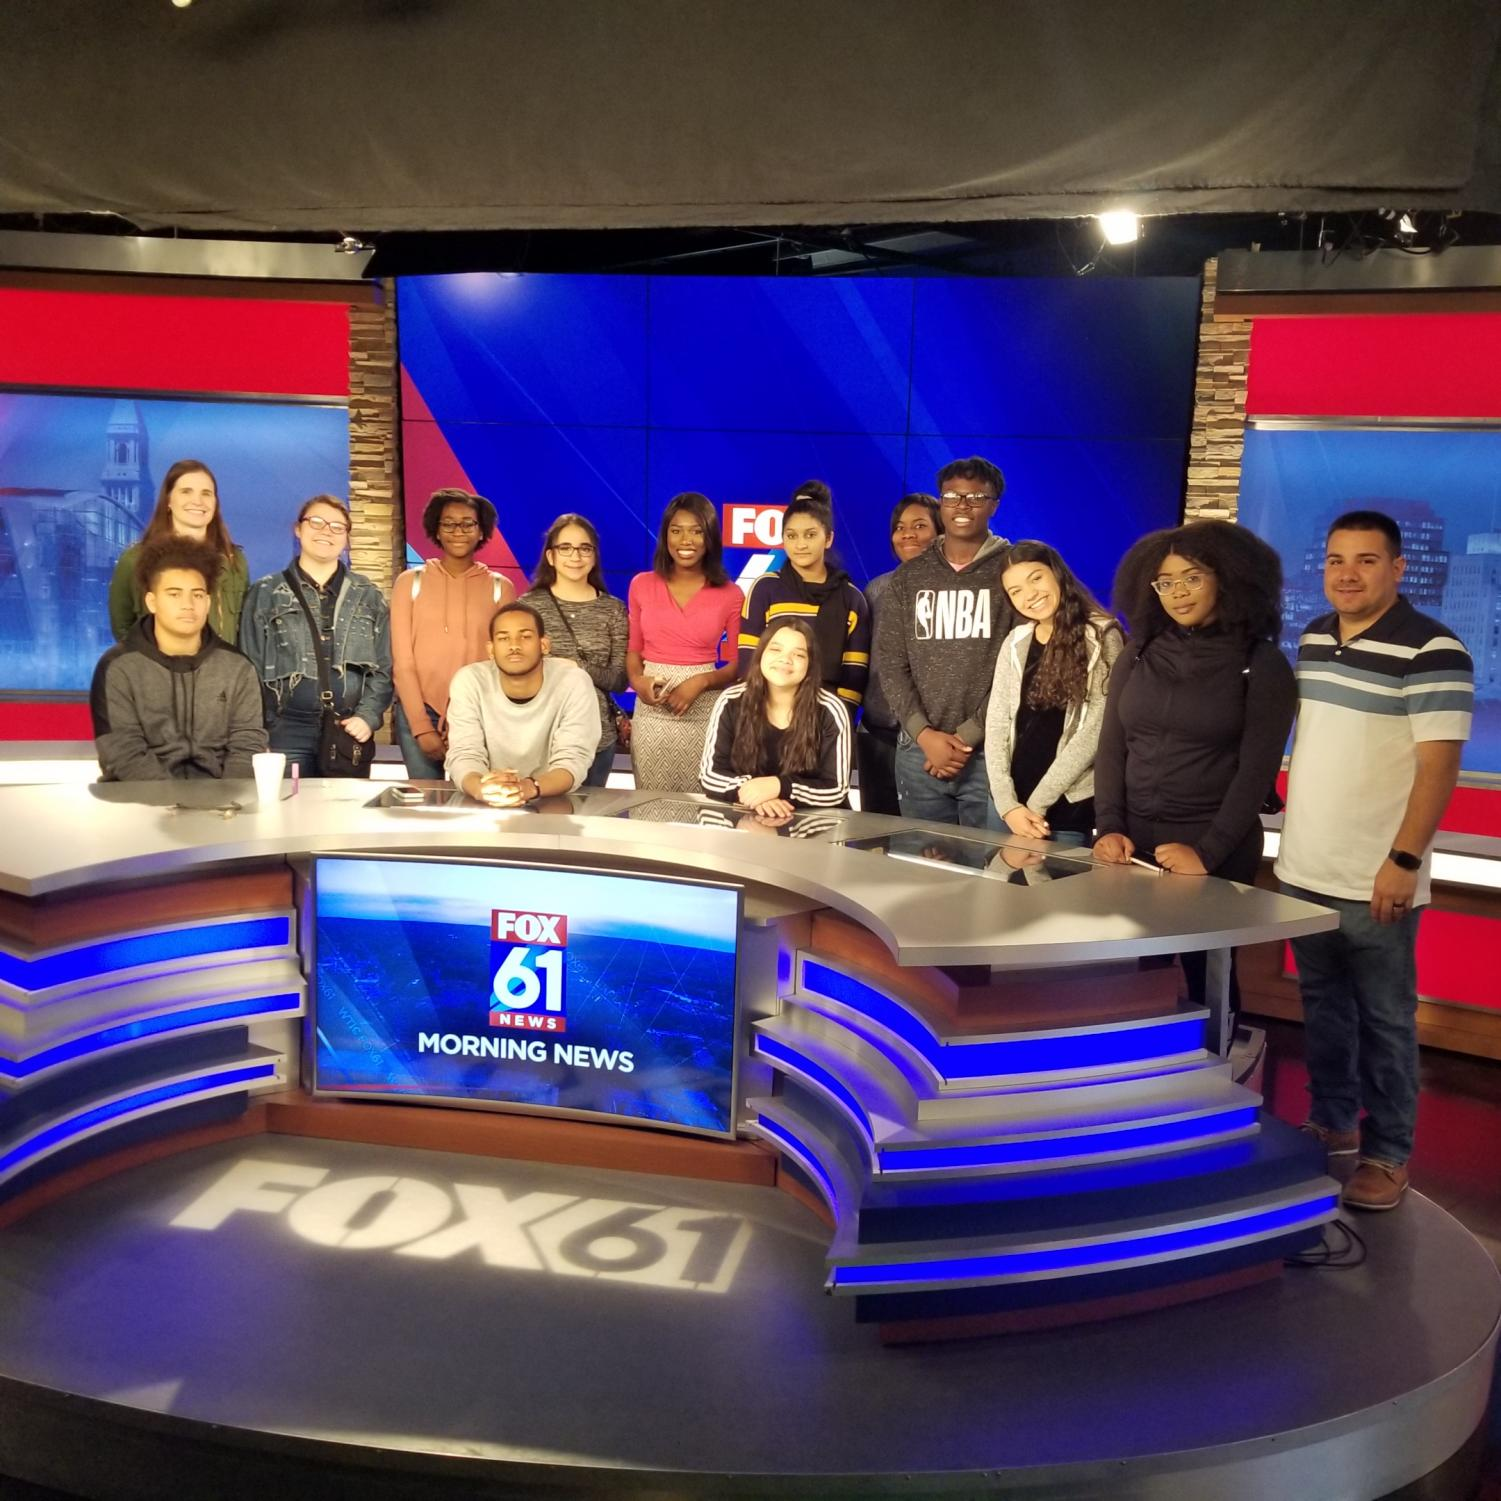 The+WHHS+group+poses+with+Aisha+Mbowe+behind+her+anchor+desk.